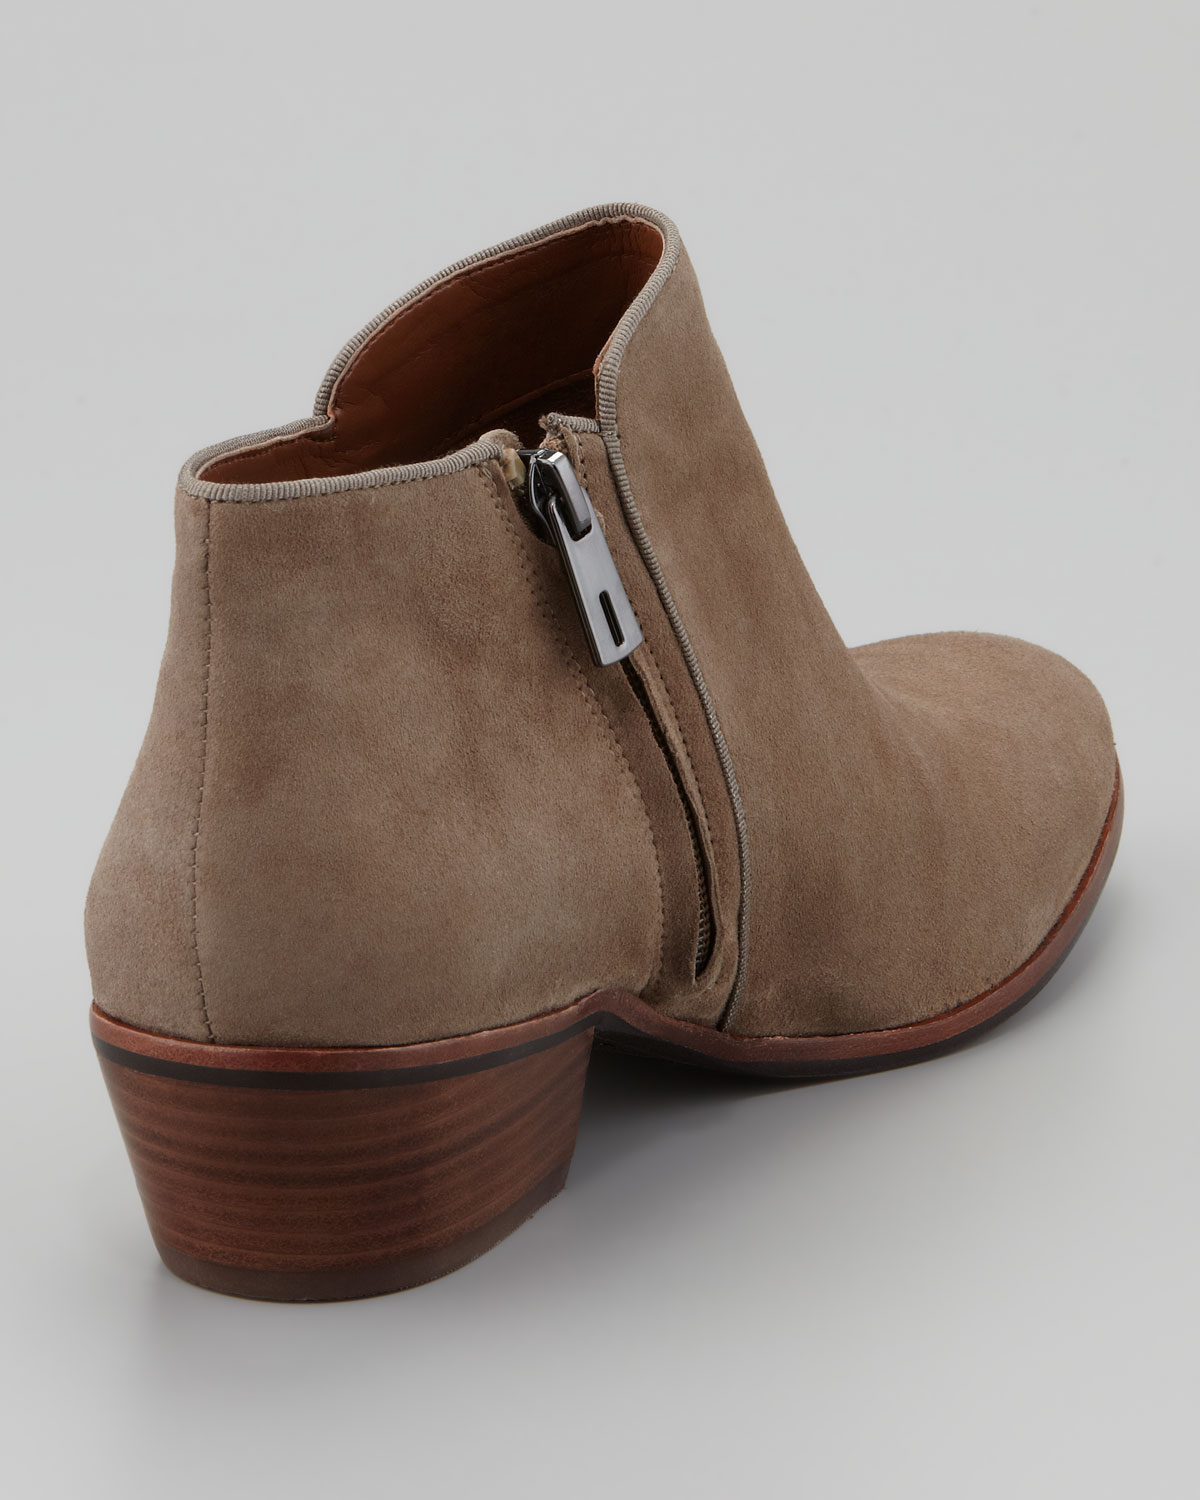 Sam Edelman Womens Petty Suede Ankle Boot Tan in Brown - Lyst